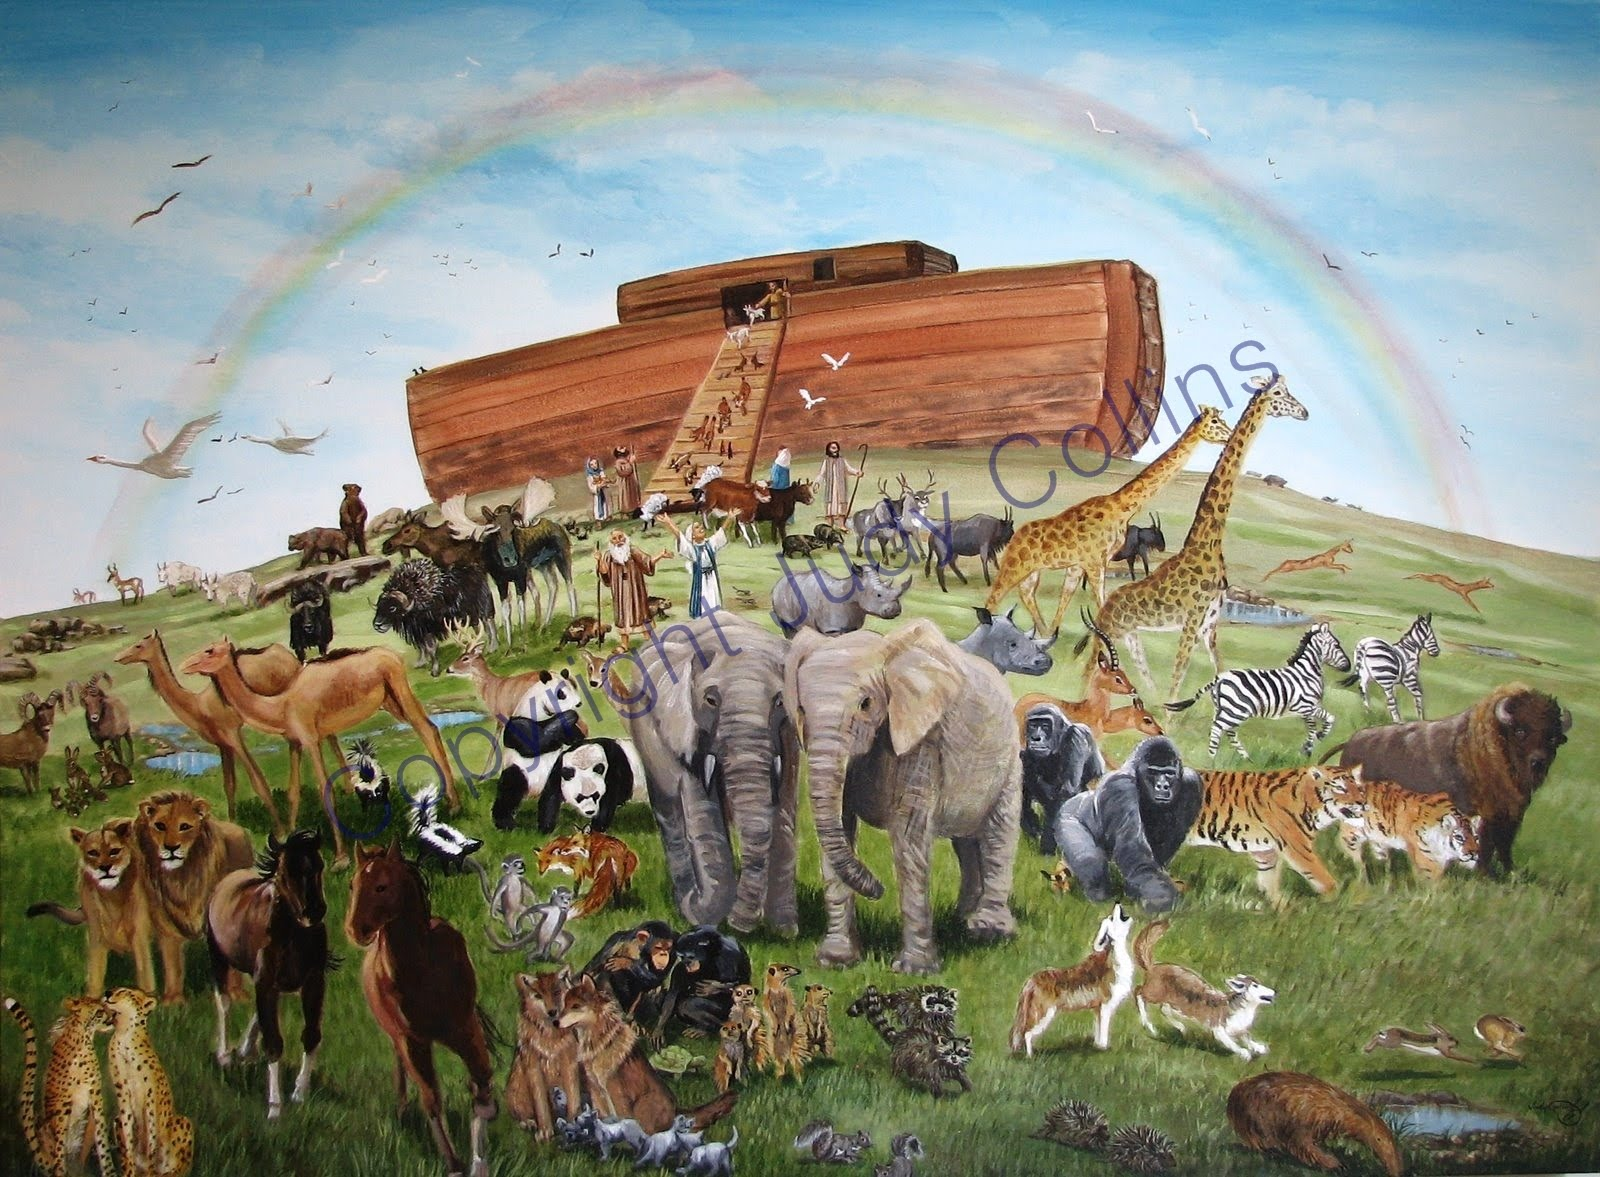 To Hell - and back: Noah's ark - and other fairy tales